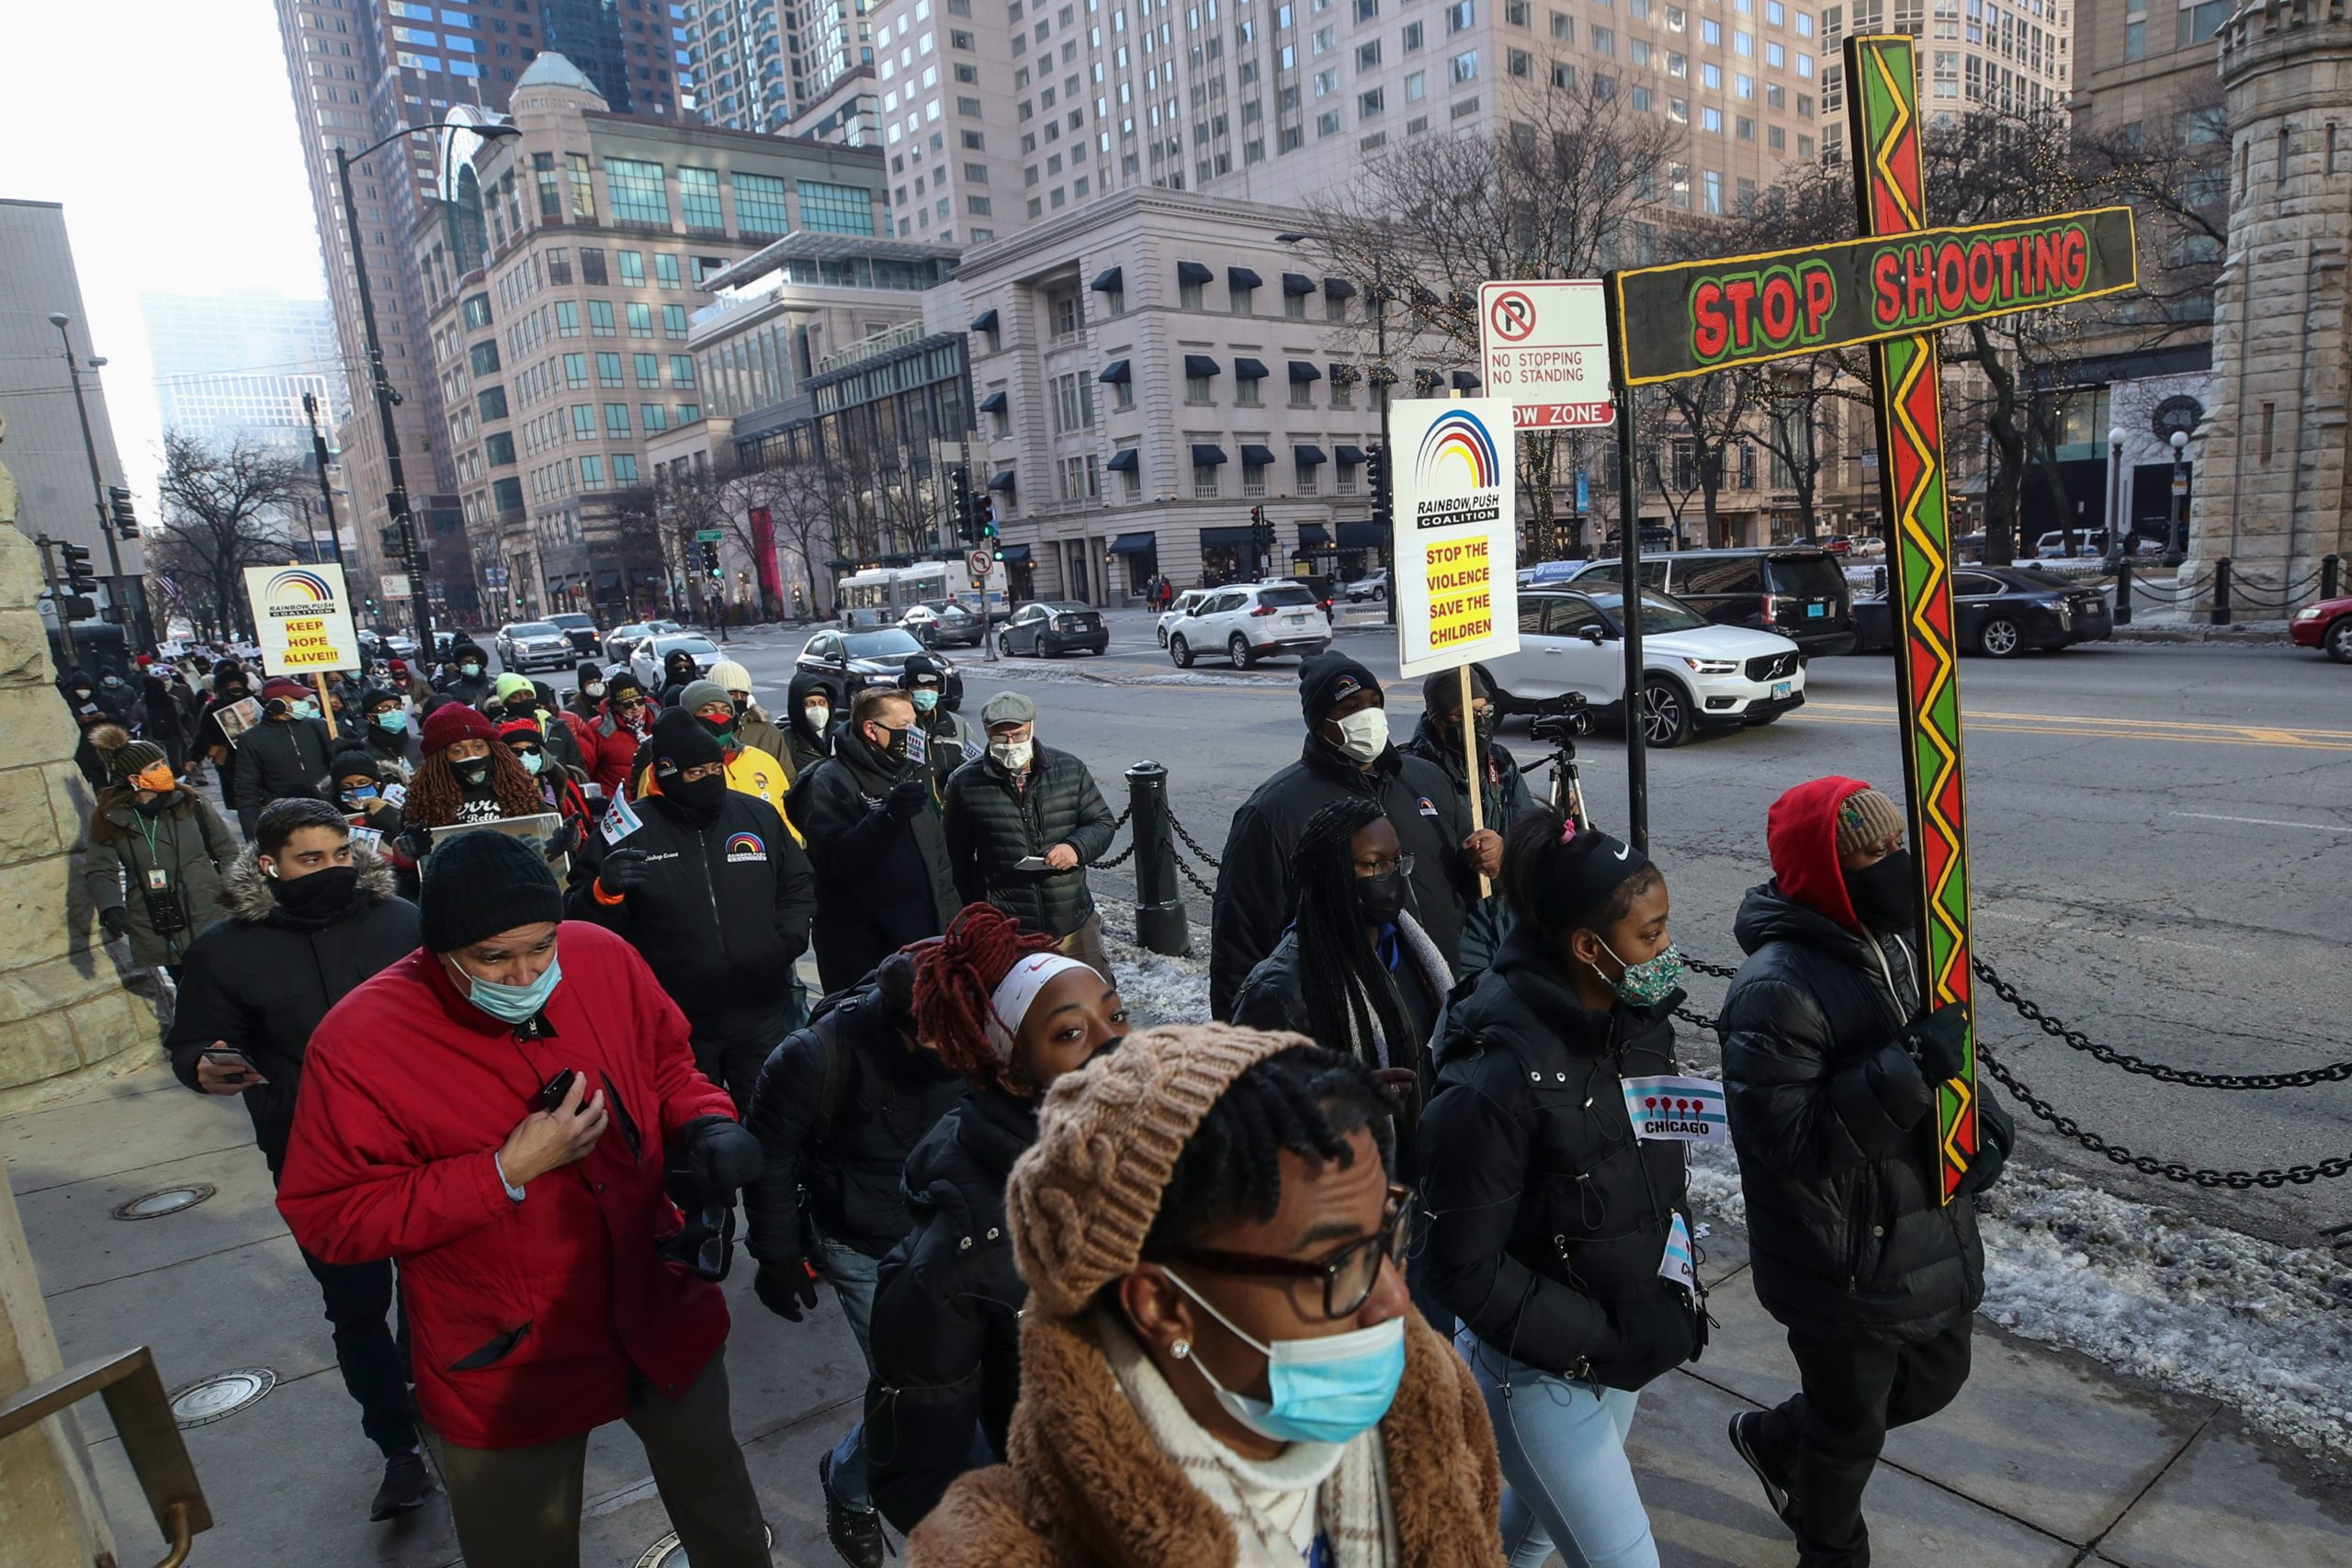 People walk during an anti-gun violence march on in Chicago, Illinois, on Dec. 31, 2020. (Kamil Krzaczynski/AFP via Getty Images)